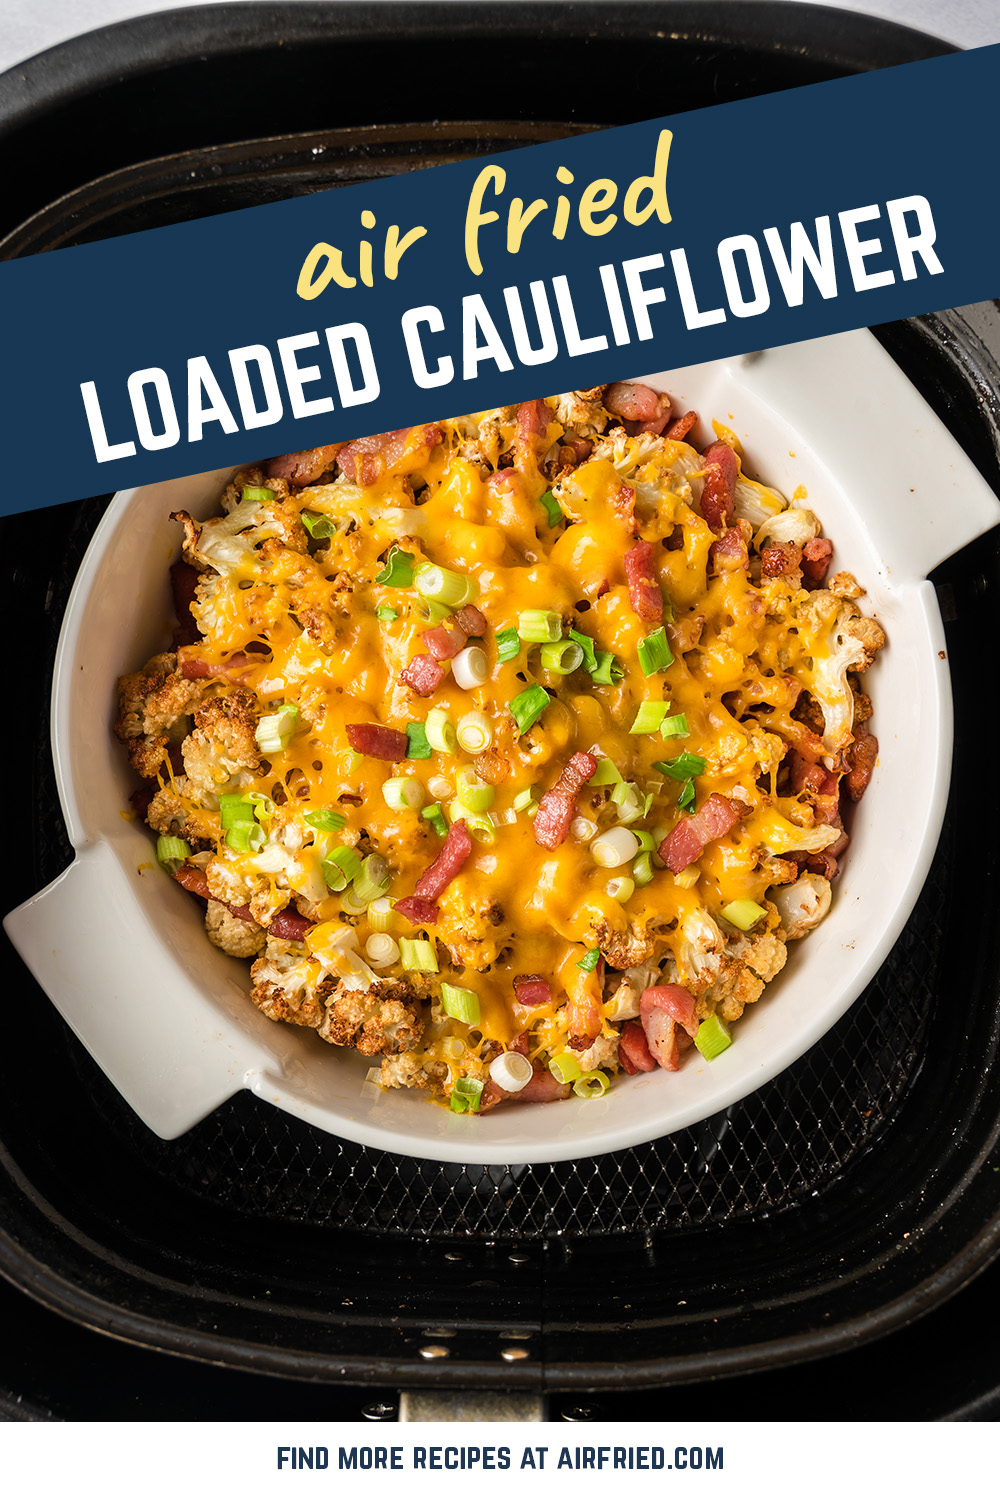 Make your caulilflower better by loading it up with bacon and cheese just like a potato!